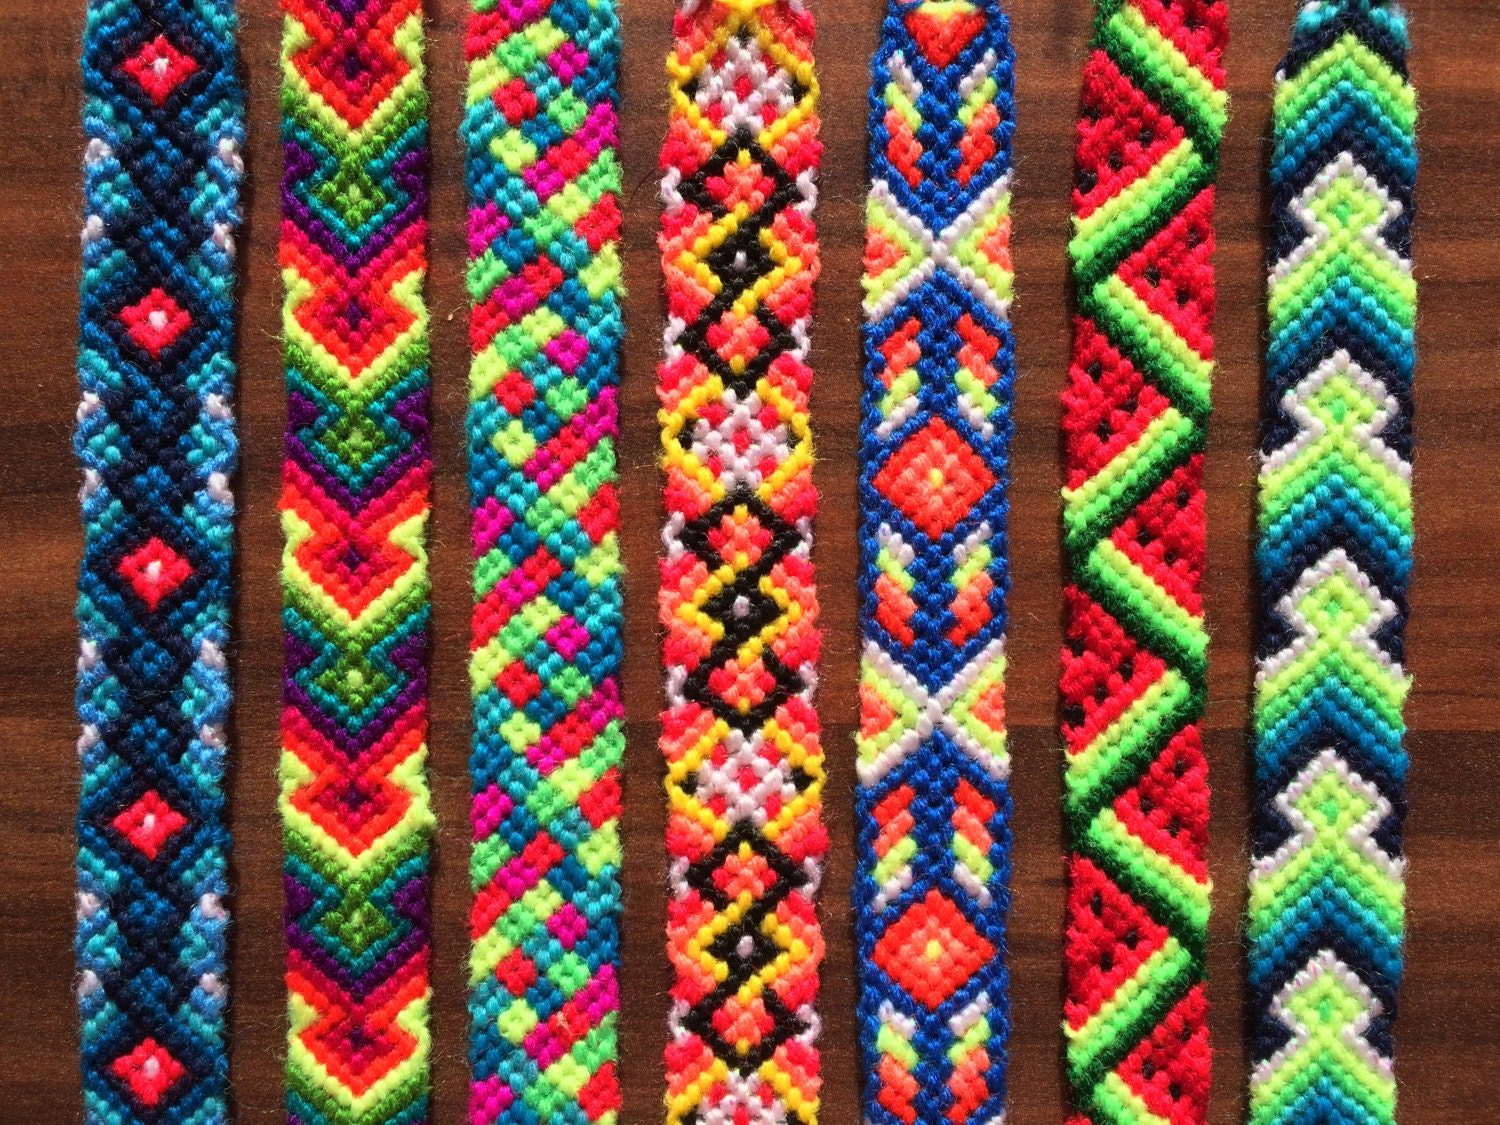 Friendship Bracelet Handwoven Braided Knotted Wrap